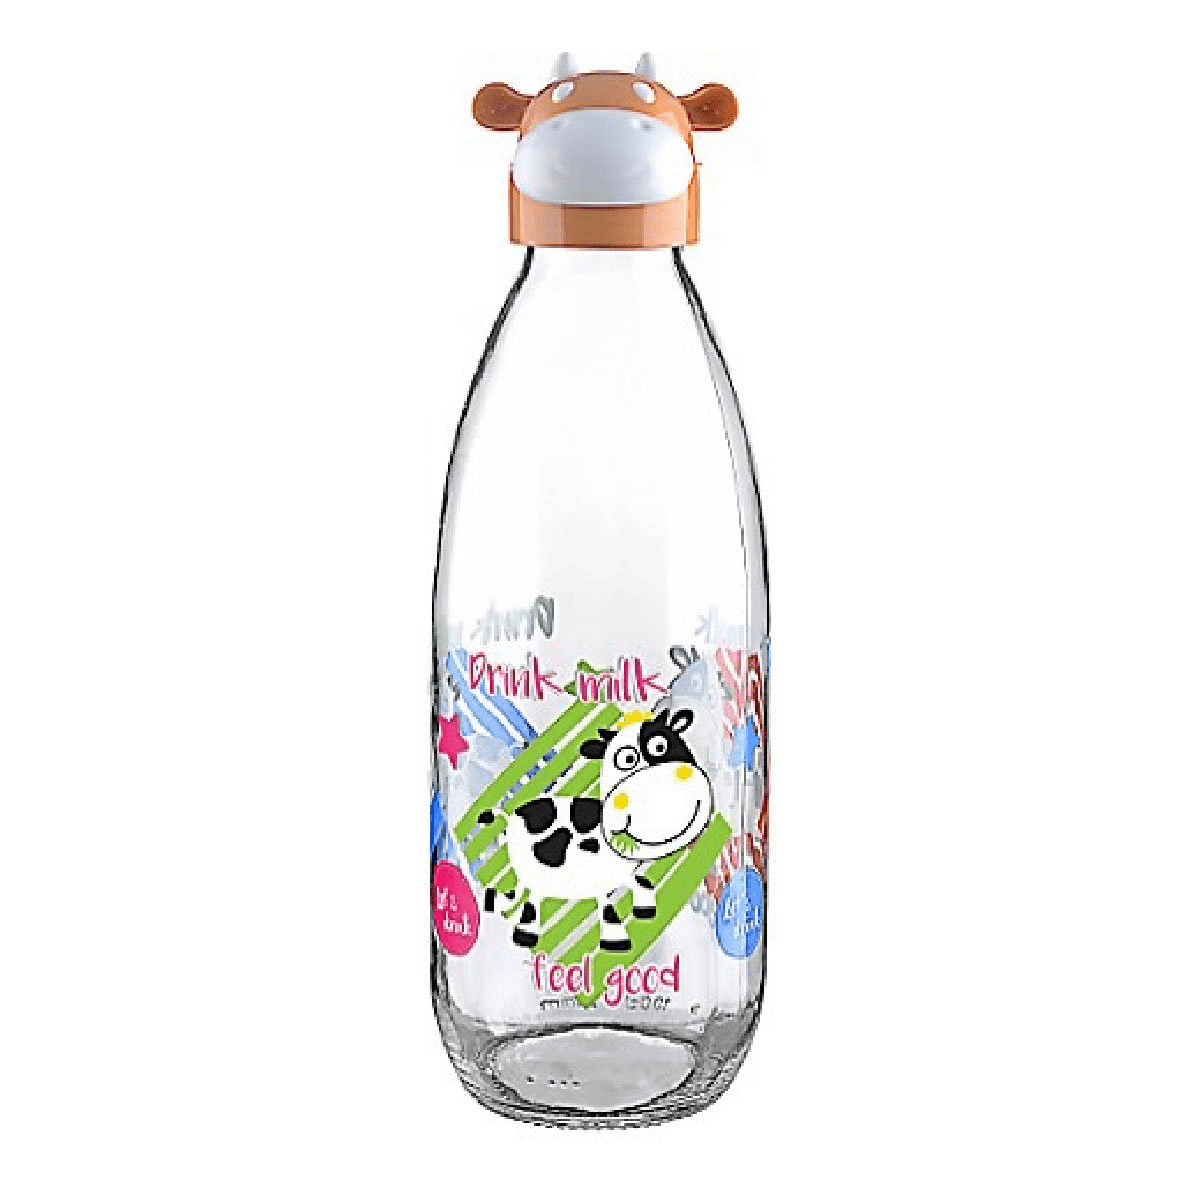 Botella vidrio vaca 1000 ml